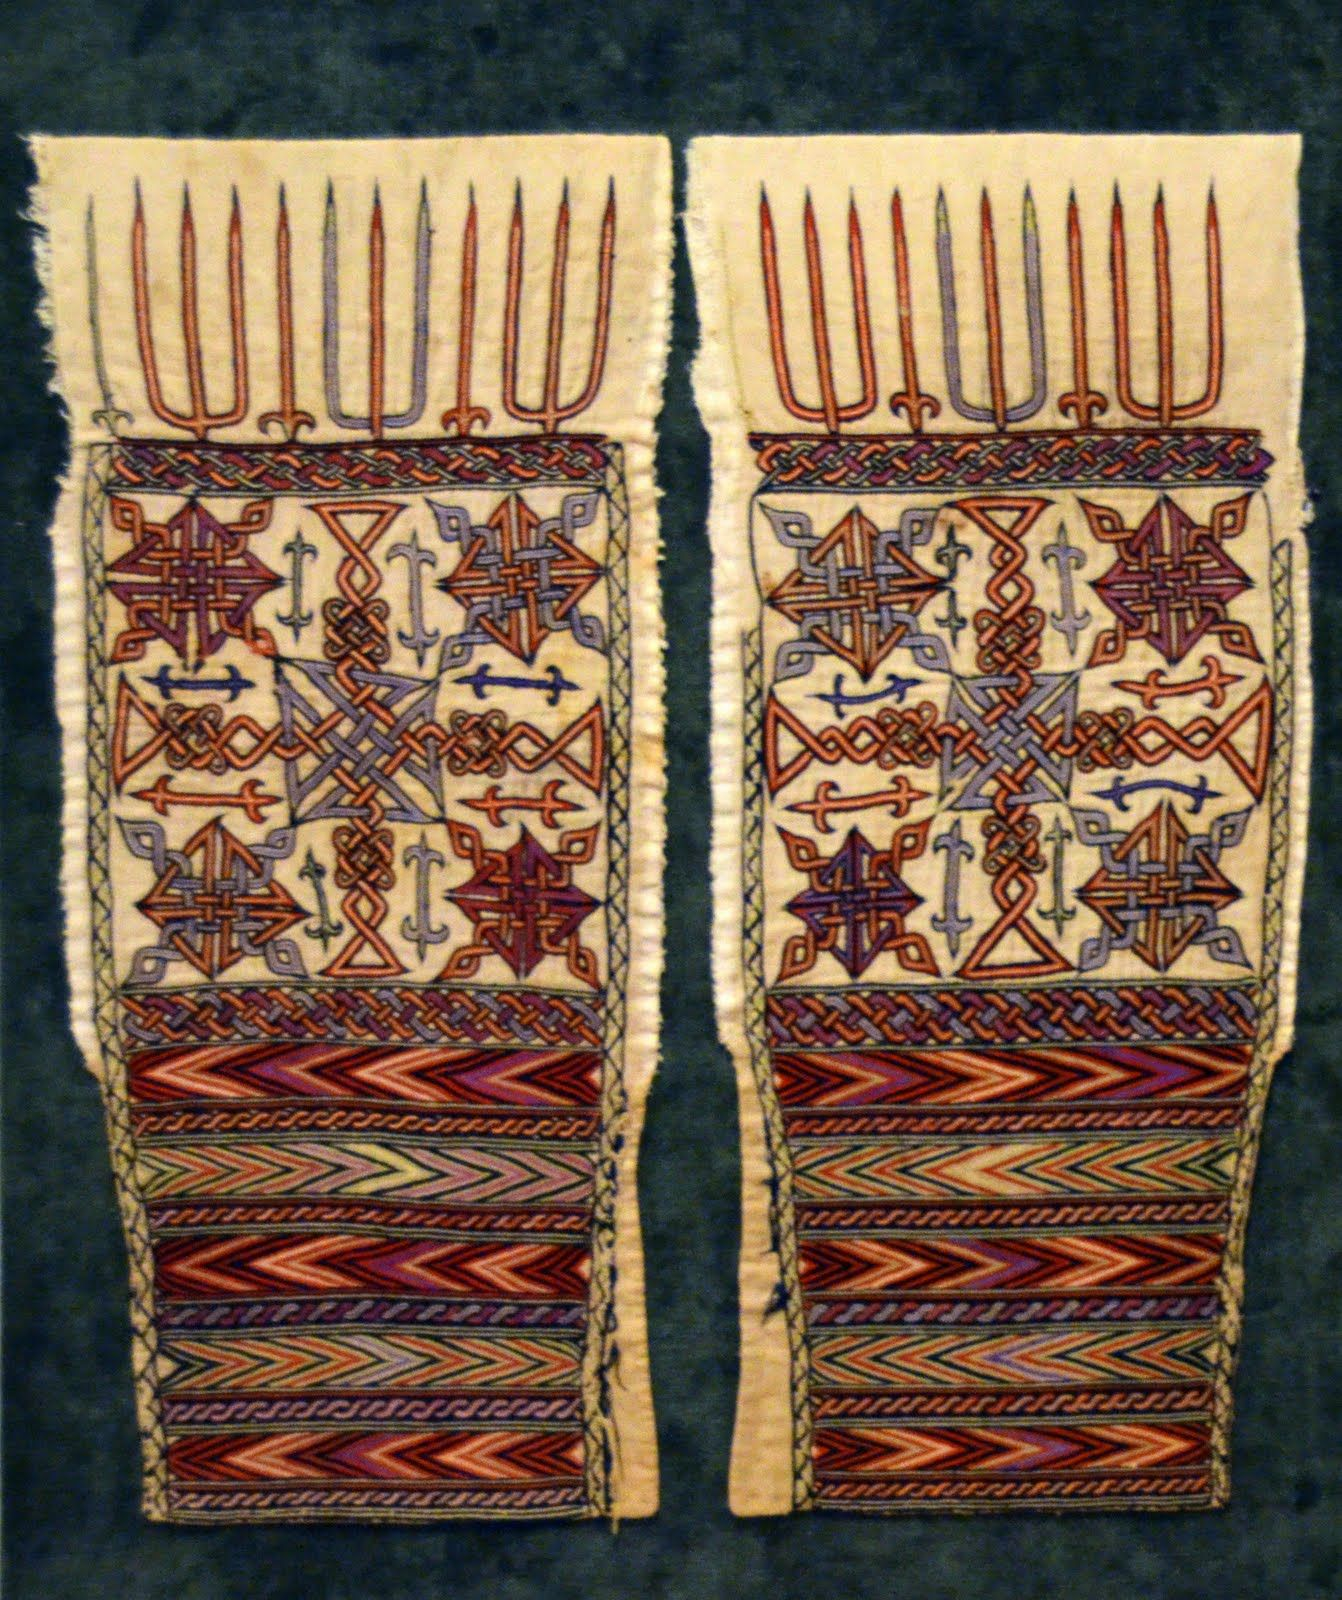 Historic embroidery on sleeves ethiopian historical textiles